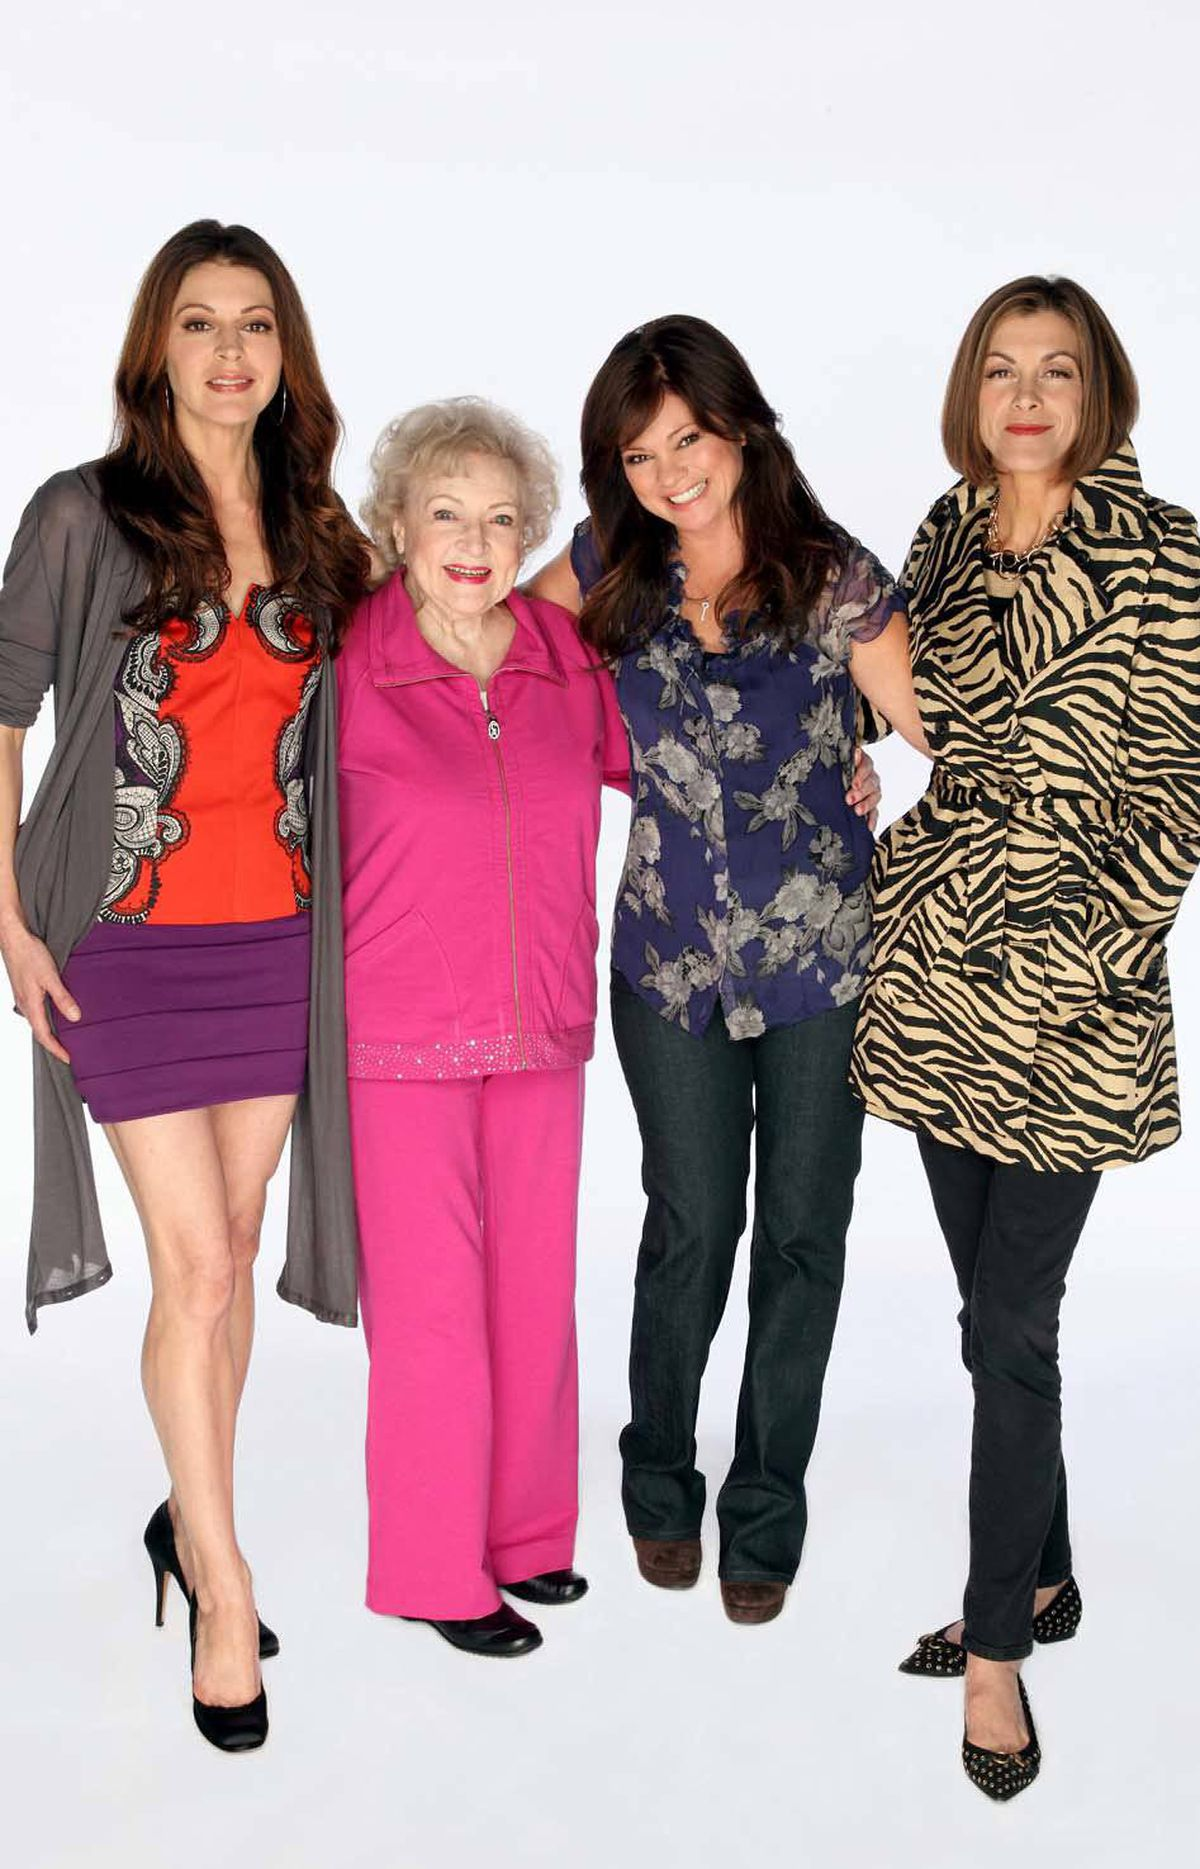 COMEDY Hot in Cleveland CTV, 8:30 p.m. Fortysomething girls just want to have fun in this old-school sitcom from the U.S. cable channel TV Land. Currently in its third season, the show's premise casts TV veterans Jane Leeves (Frasier), Valerie Bertinelli (One Day at a Time) and Wendie Malick (Just Shoot Me) as Joy, Melanie and Victoria, three unattached L.A. doyennes who reboot their lives in Cleveland. The inimitable Betty White lends support as their crusty caretaker Elka. And does love bloom in the city of bowling shirts and bratwurst? In tonight's episode, Joy makes the mistake of dating one of Victoria's co-workers, while Melanie hooks up with a seemingly nice guy, unaware that he's obsessed with her feet.